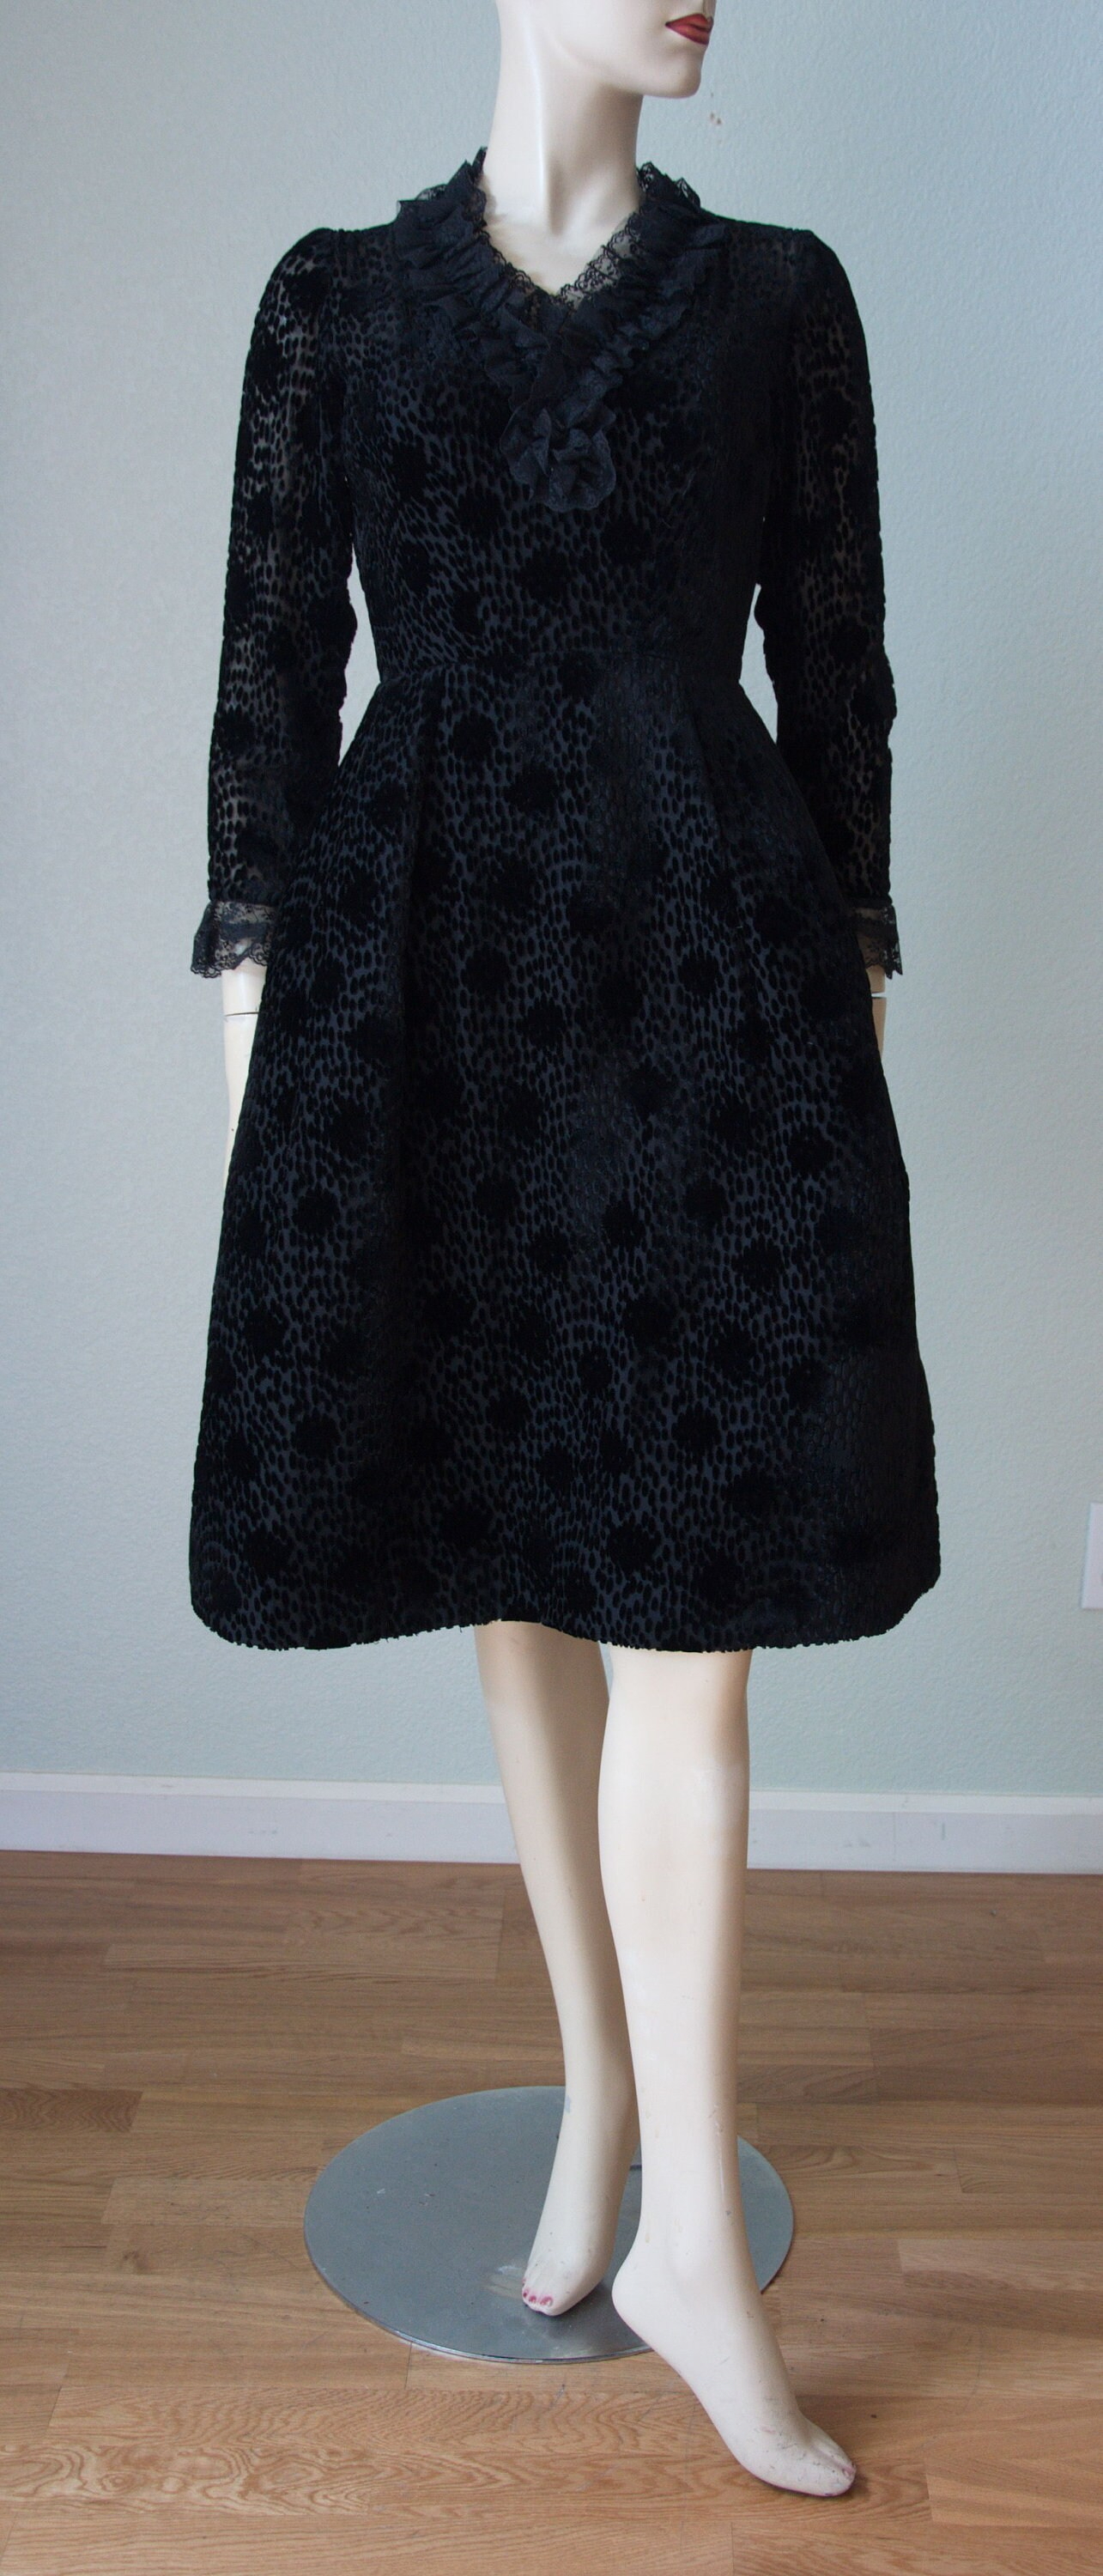 Salon Moderne 1960s Dated Custom Made Saks Dress 1960s Dress Cocktail Dress 60s Couture Dress Cut Velvet Mini Small